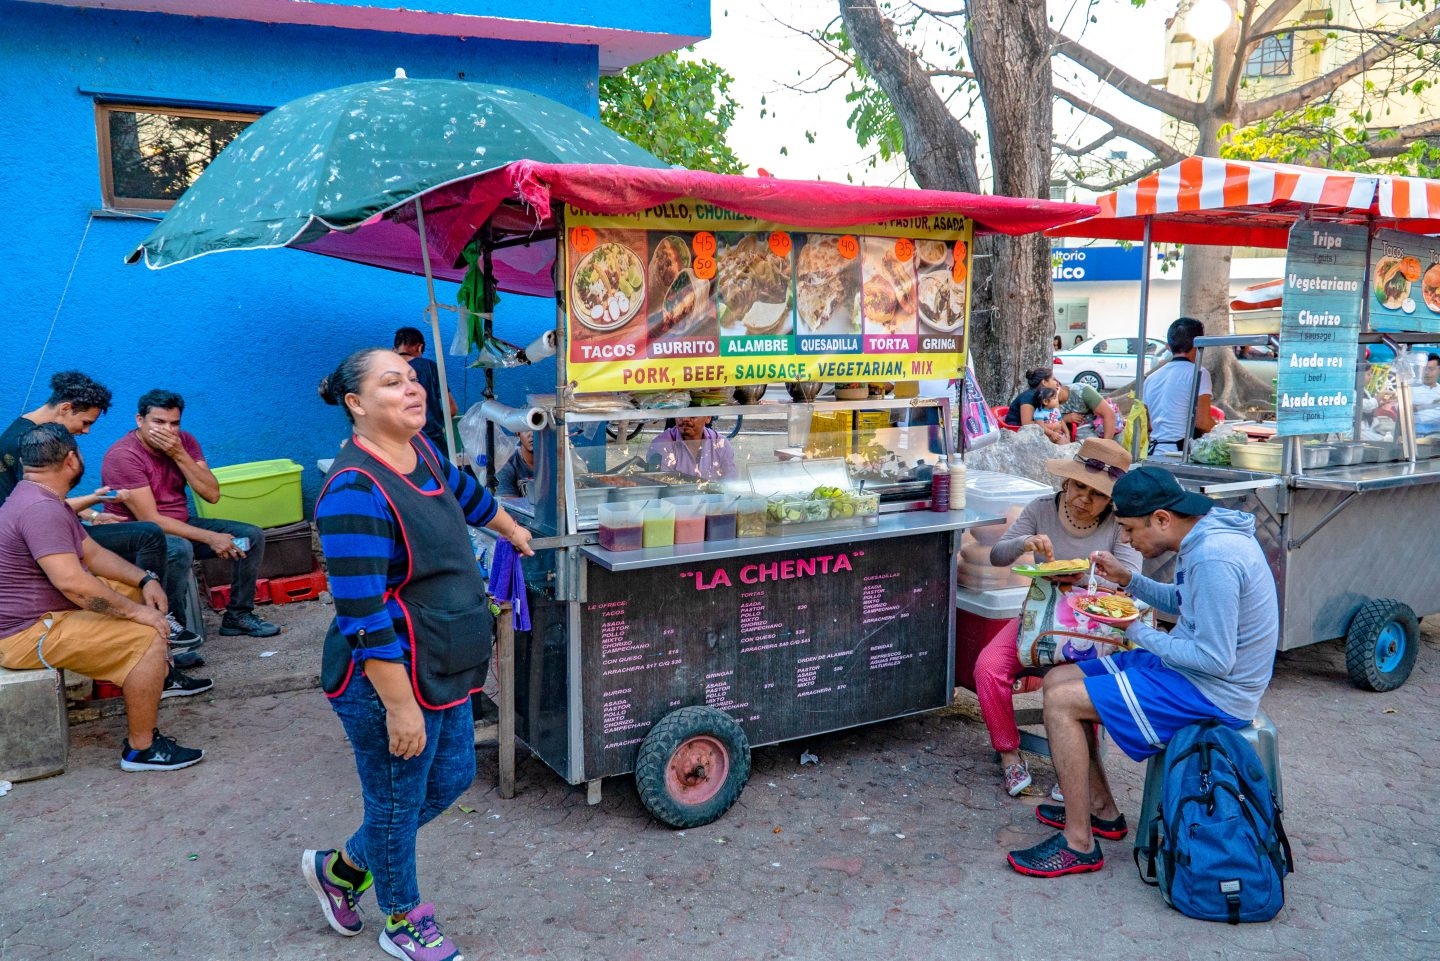 The Food Carts on 15th and Juarez.